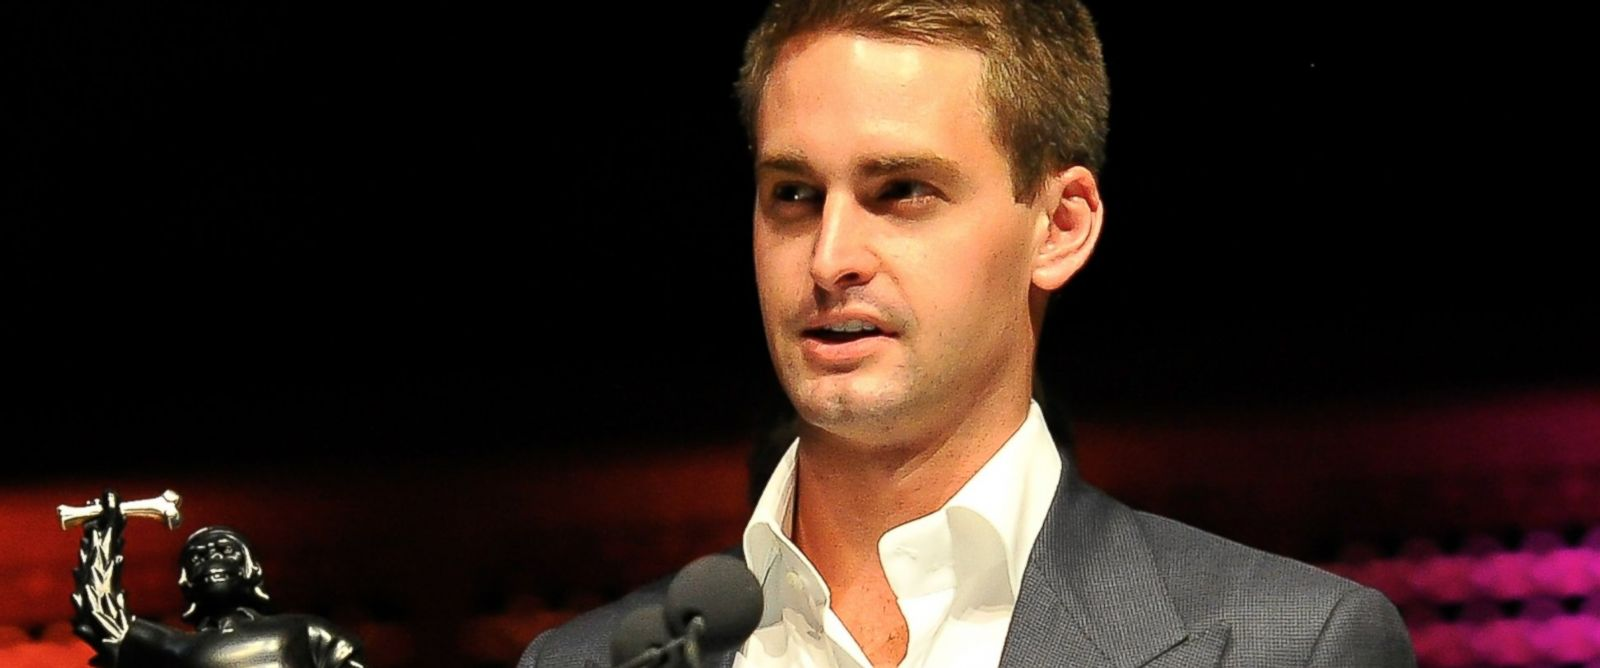 PHOTO: Evan Spiegel of Snapchat is pictured on Feb. 10, 2014 in San Francisco, Calif.